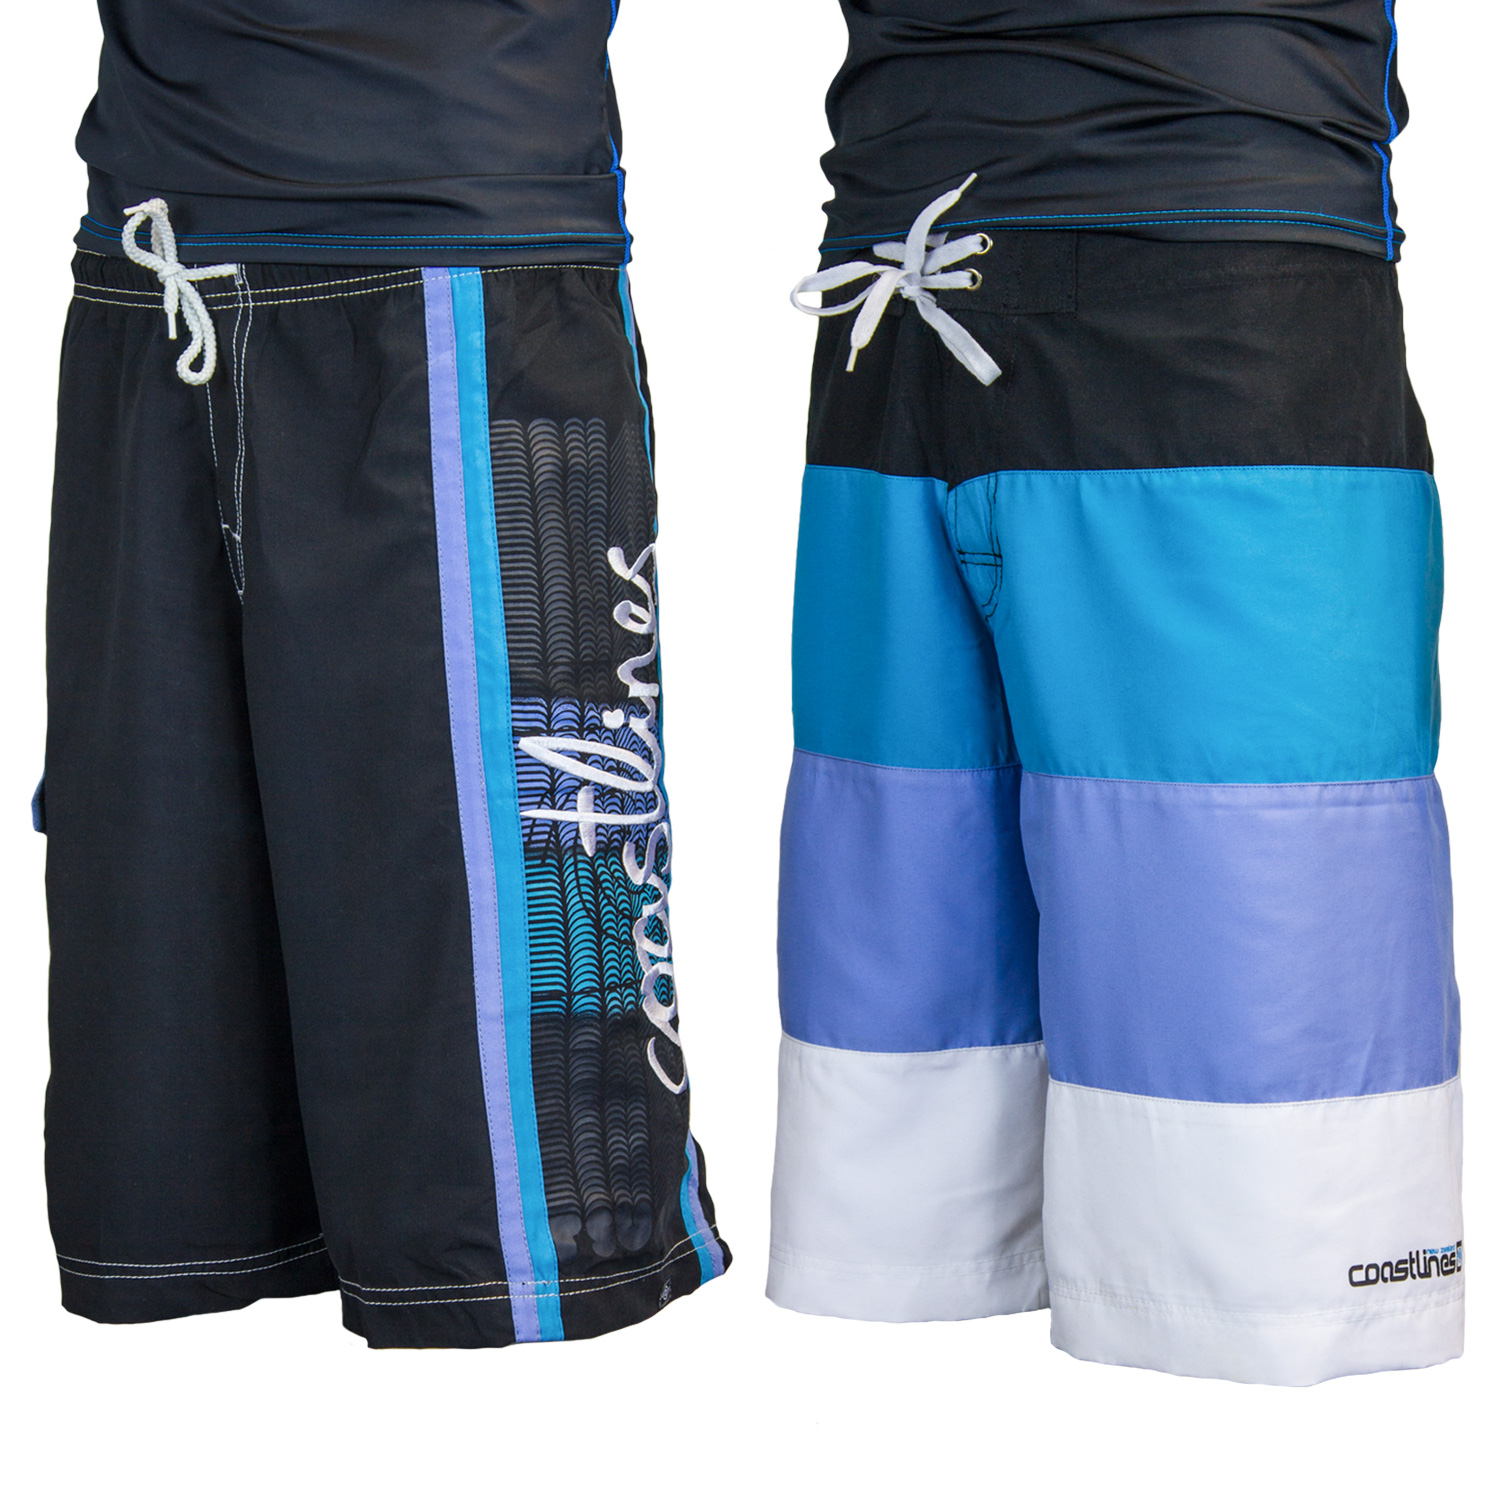 c0eb30983ce Great pair of Coastlines Board Shorts with adjustable waist for a perfect  fit; Coastlines is ...